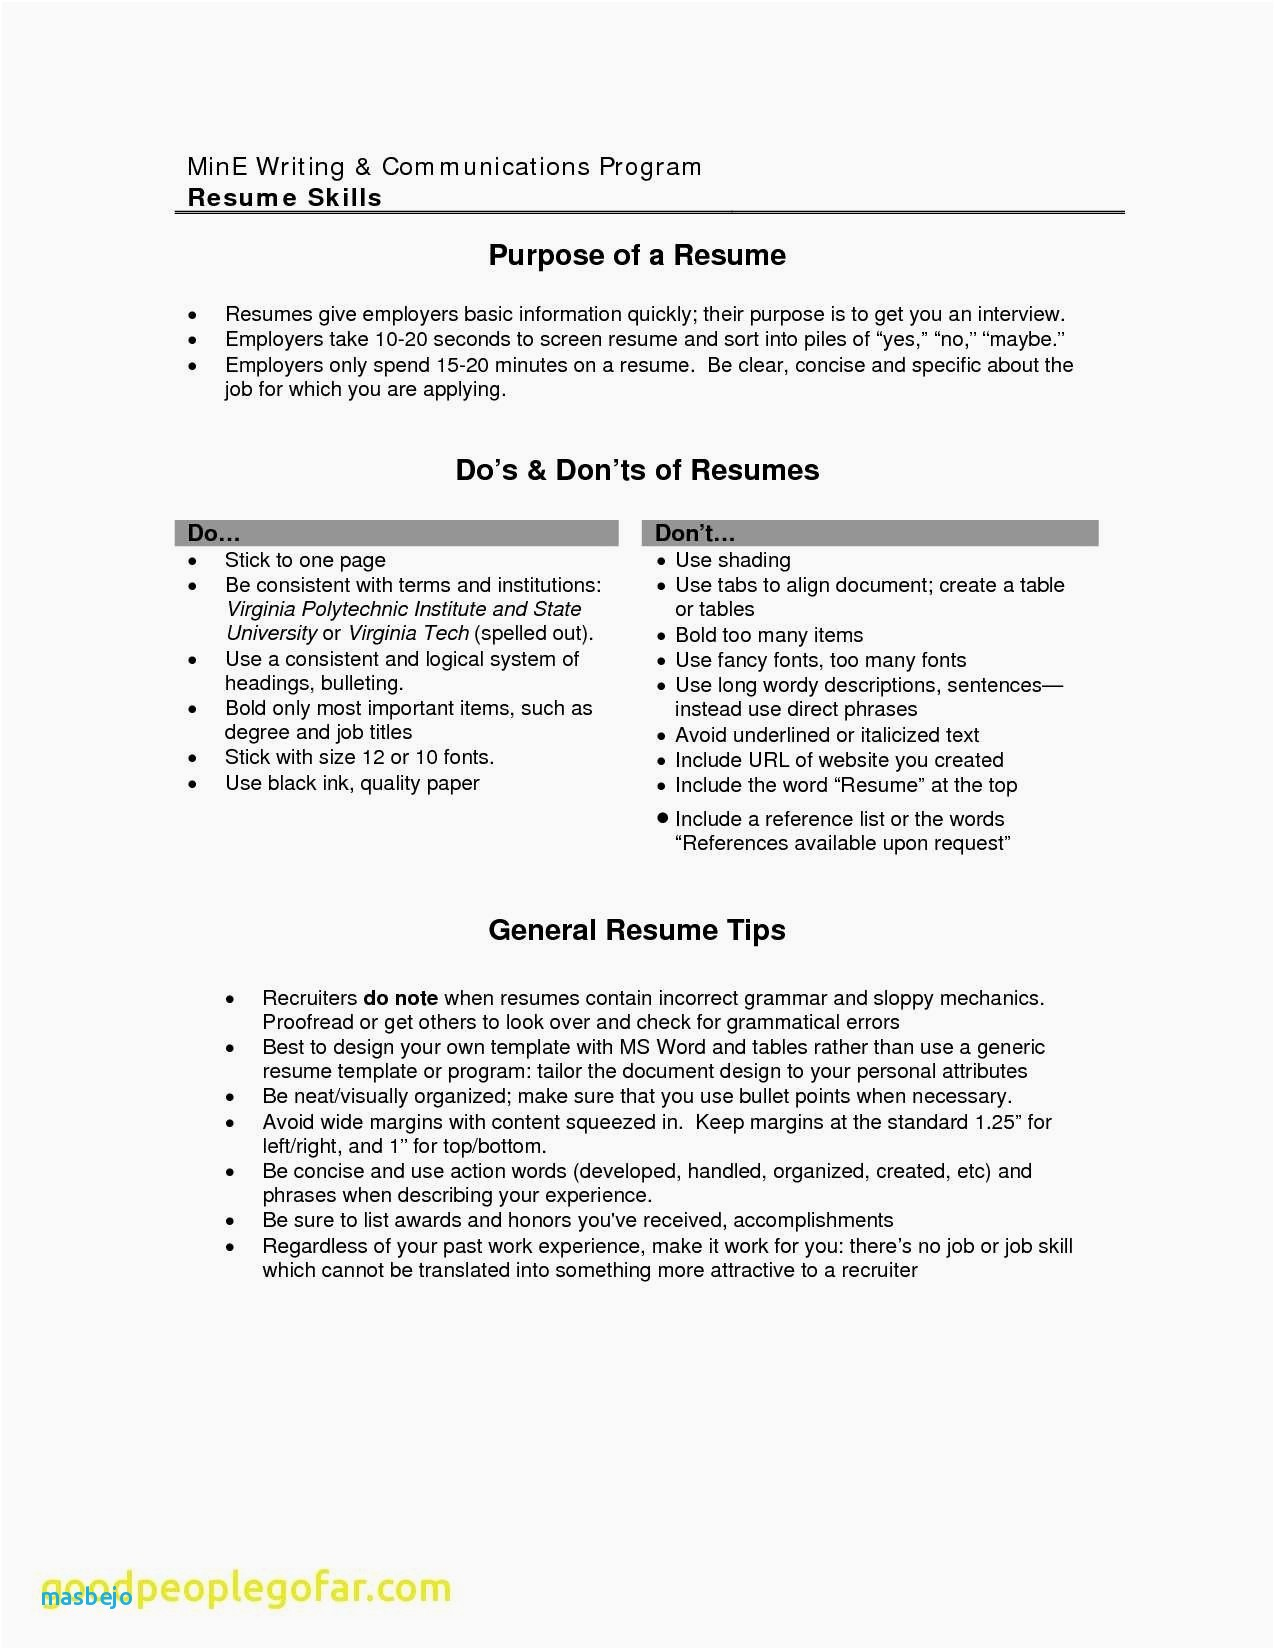 Purpose Of A Resume - 30 Elegant Purpose A Resume